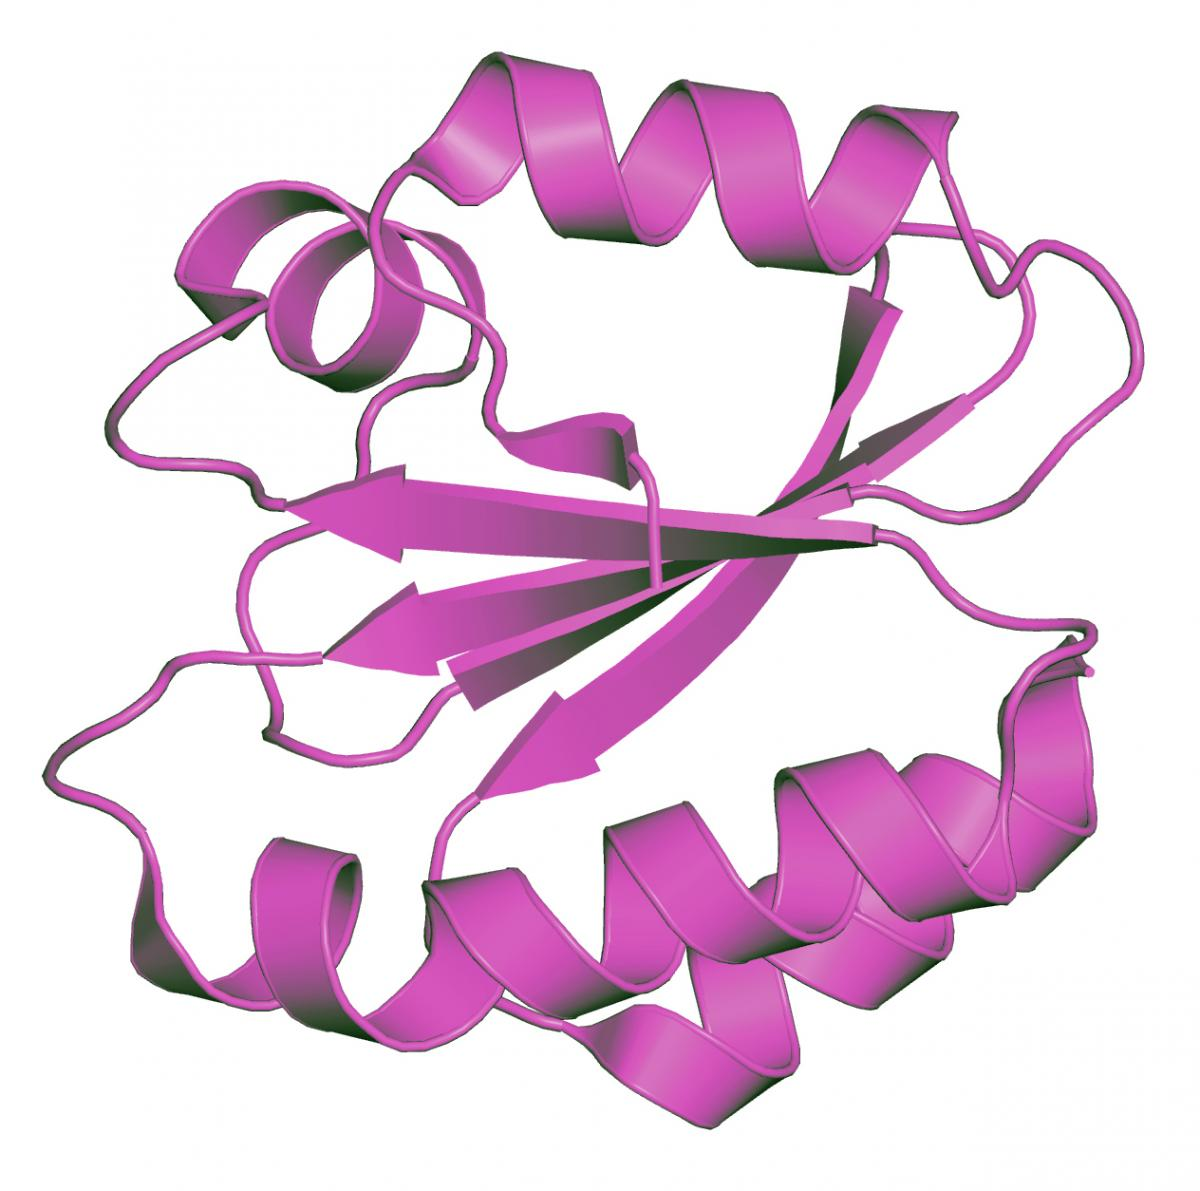 Molecular structure of thioredoxin